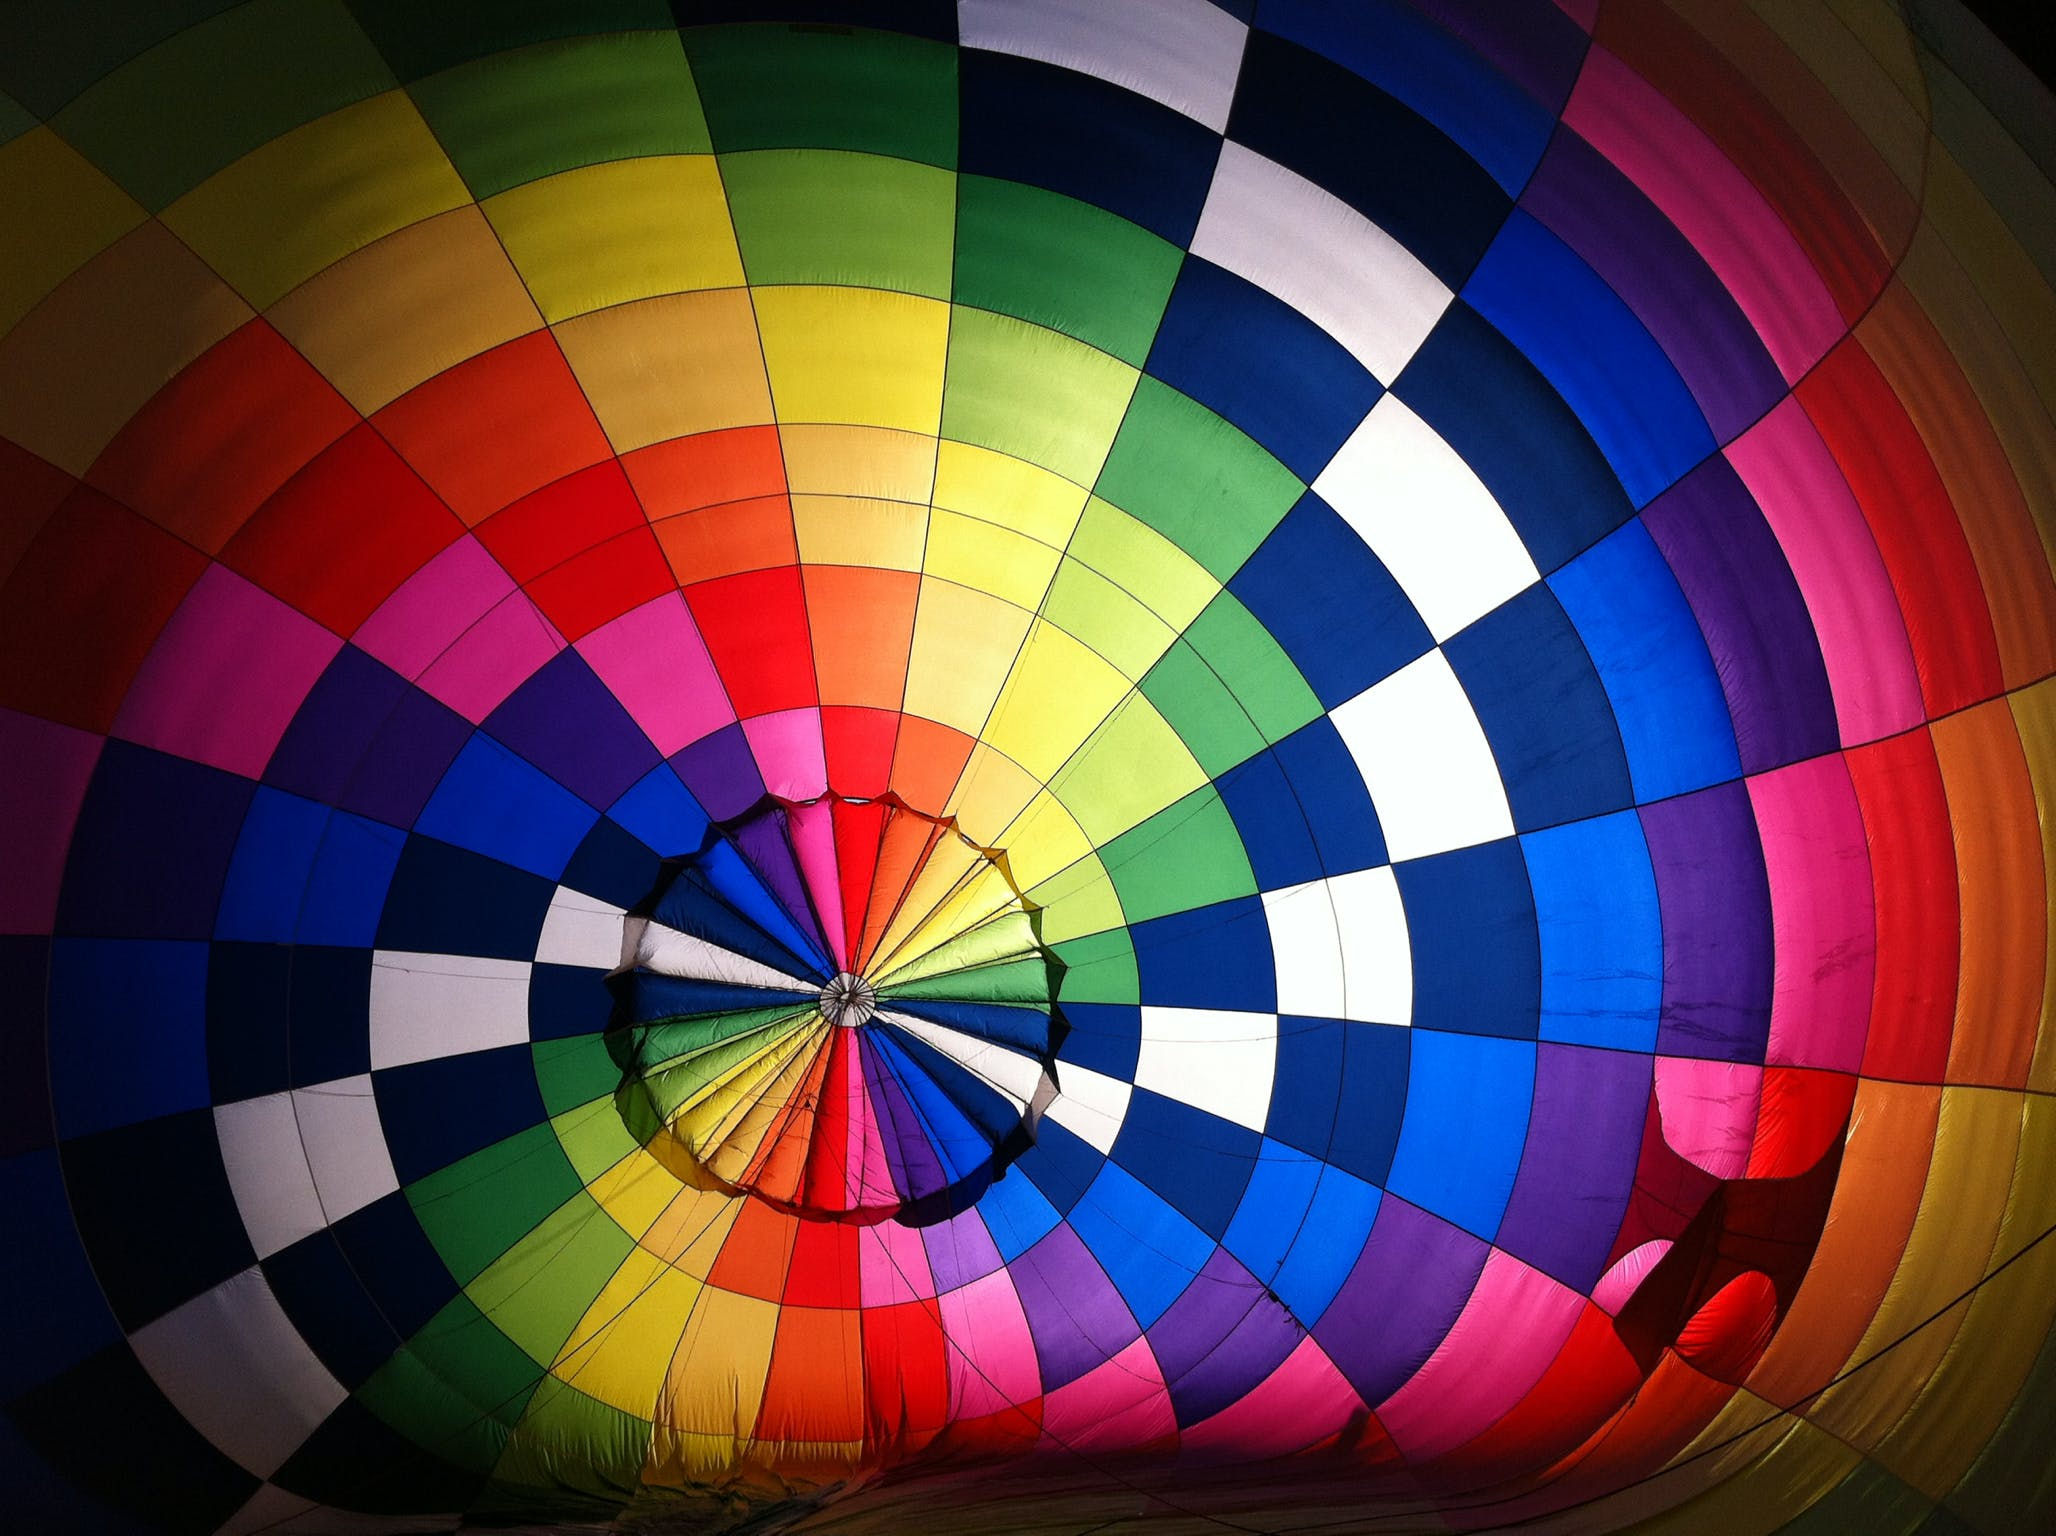 Top View of Multicolored Hot Air Balloon